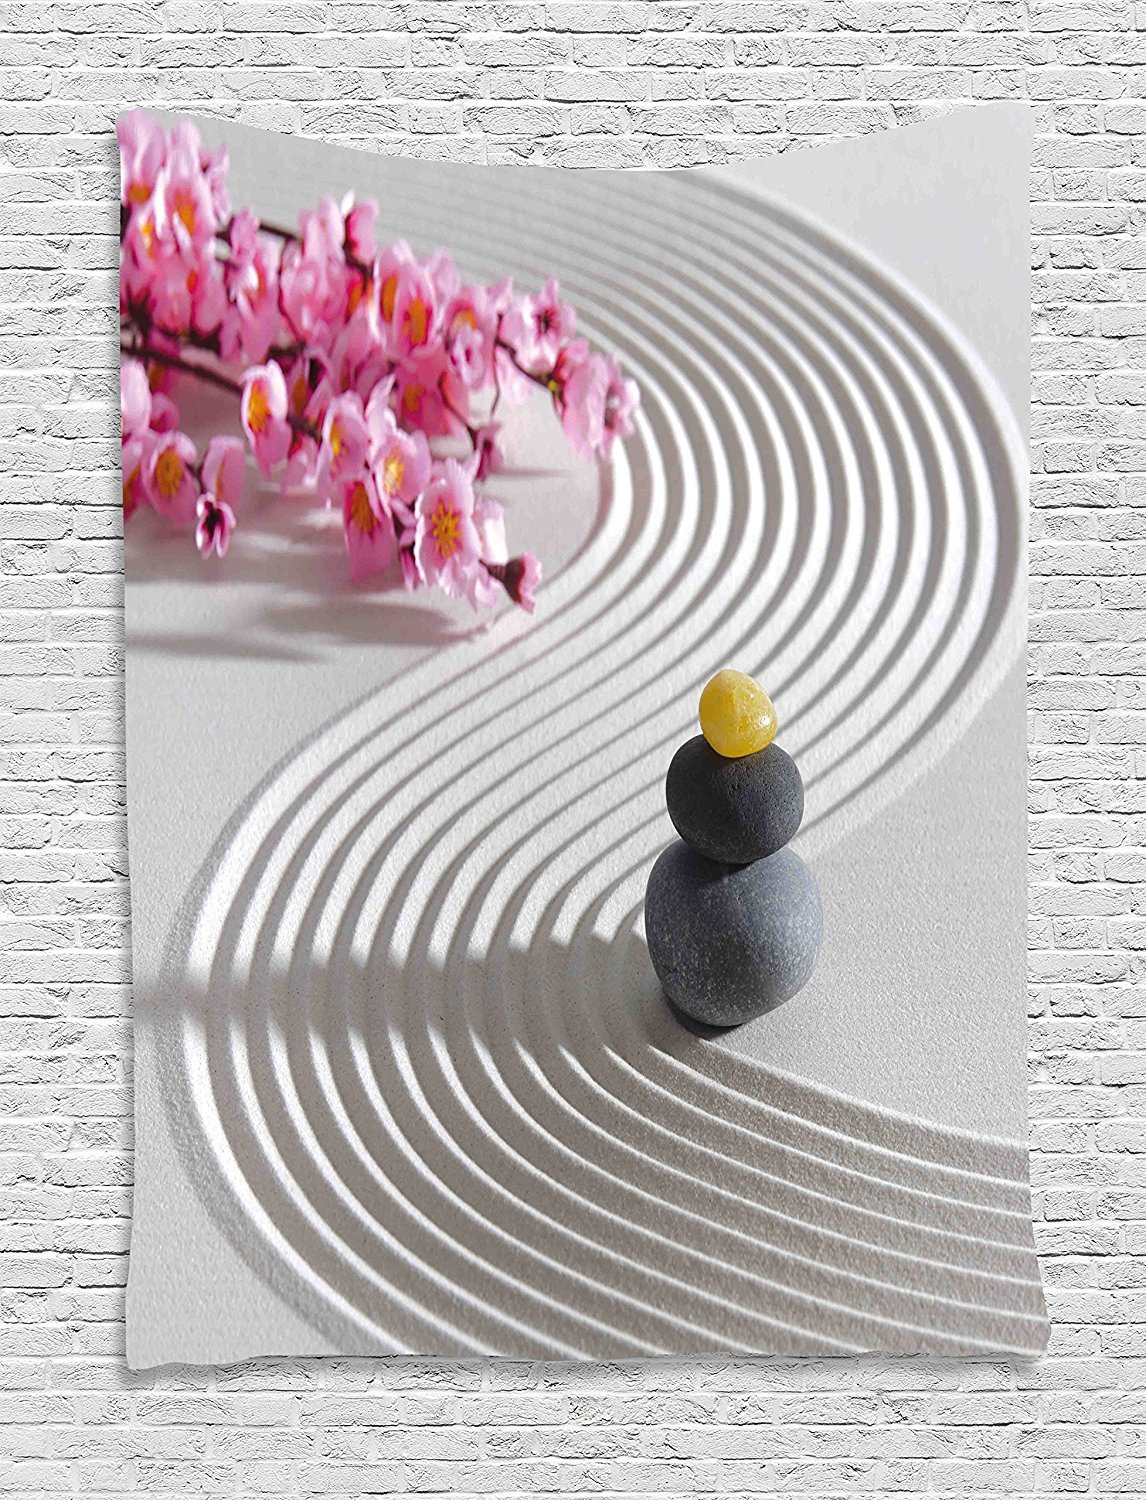 asddcdfdd Spa Tapestry, Japanese Zen Stones of Meditation Sand with Orchids Relax Yoga Spirit Picture, Wall Hanging for Bedroom Living Room Dorm, 60WX80L Inches, Pearl Pink Dimgrey